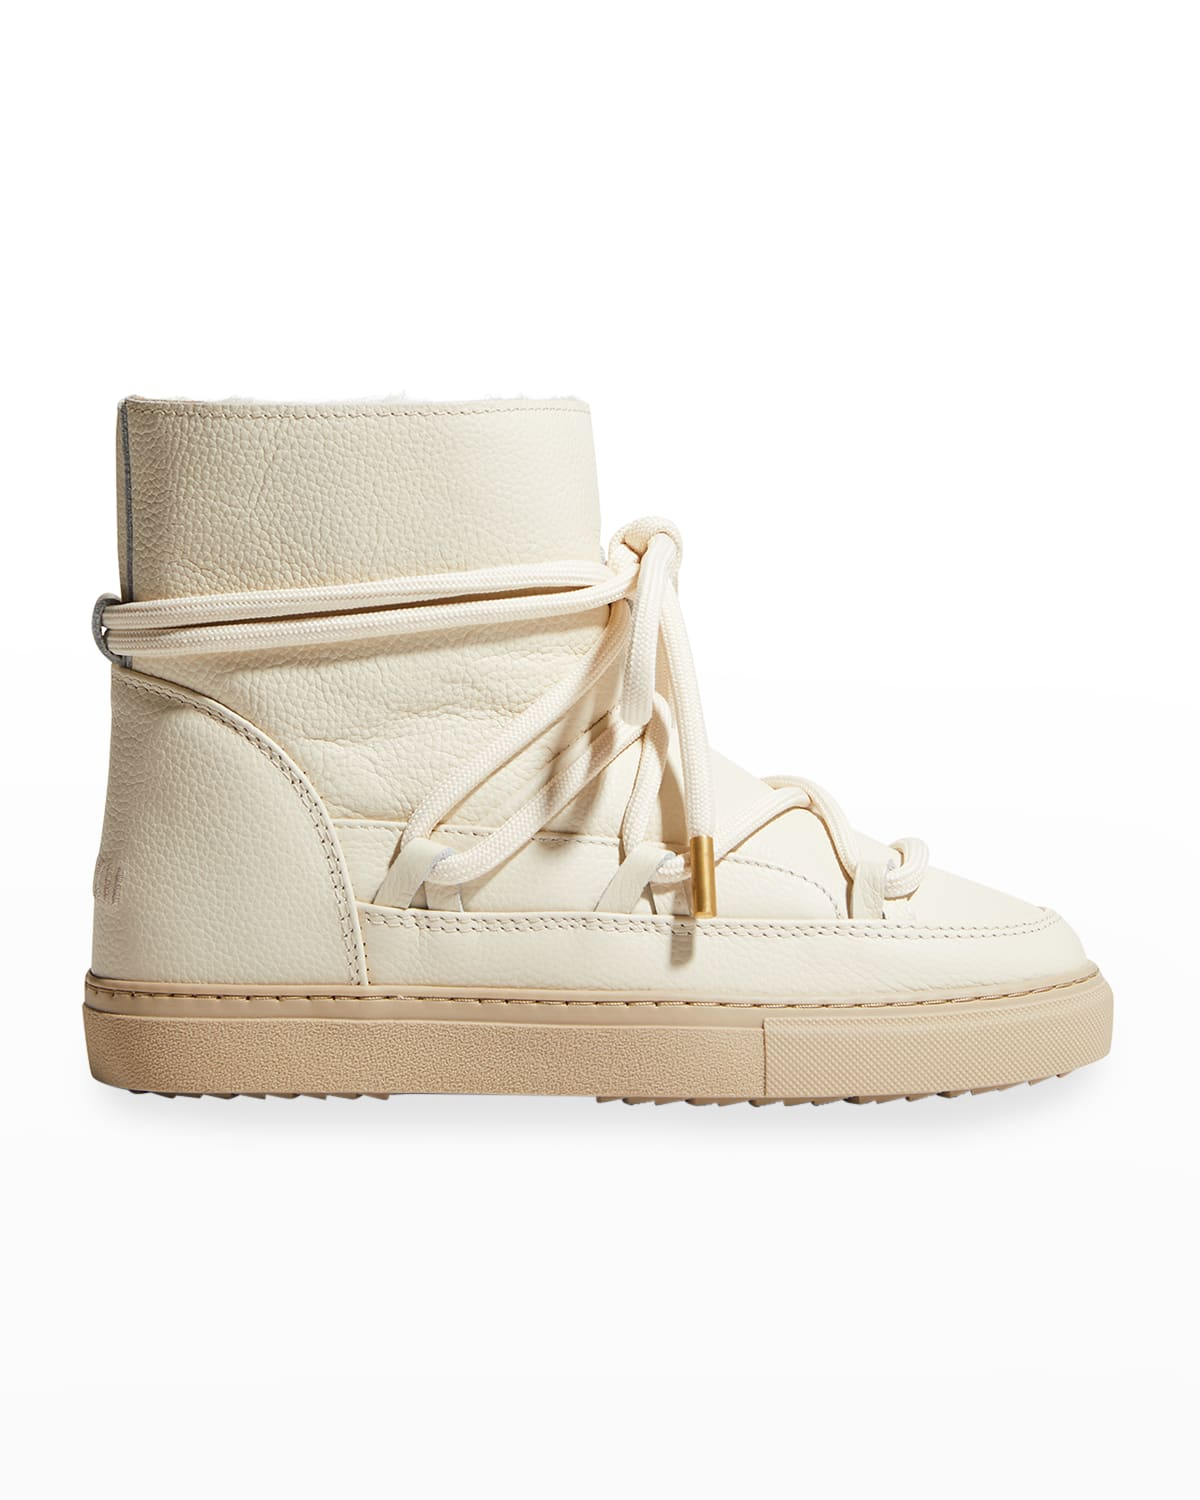 Classic Leather Shearling Snow Booties